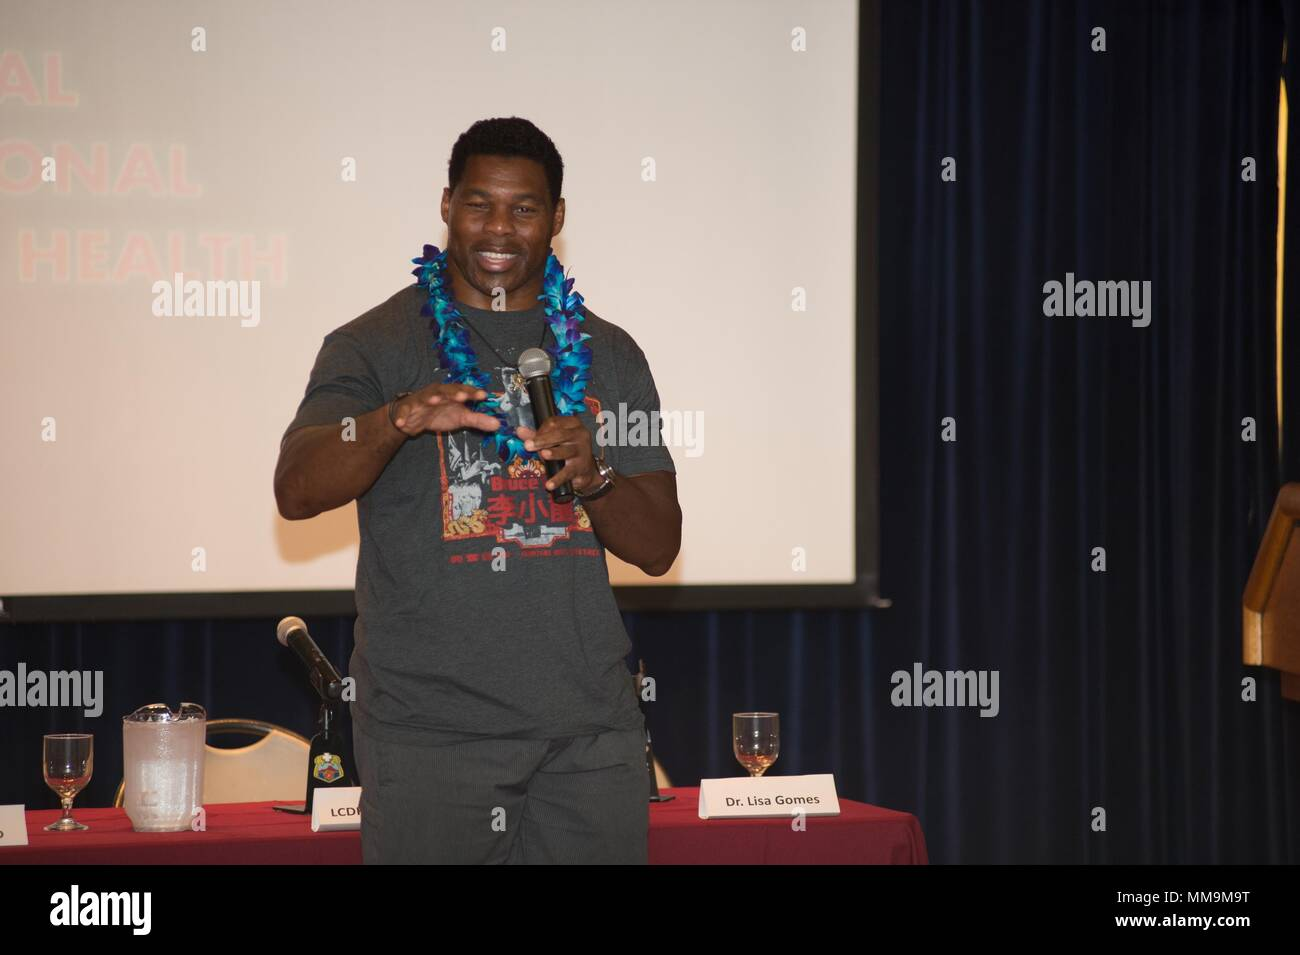 Former National Football League champion, turned mental health and addiction treatment spokesperson, Herschel Walker, served as the motivational speaker during the Regional Health Command-Pacific and Veterans Affairs Pacific Islands Health Care System co-hosted sixth annual Pacific Regional Behavioral Health Summit, Sept. 7 at Tripler Army Medical Center's Kyser Auditorium. Walker shared his monumental personal mental health journey and the steps he took to get to wellness. Walker also reflected on the importance that behavioral health professionals played in his recovery. (Photo credit: Marlo - Stock Image